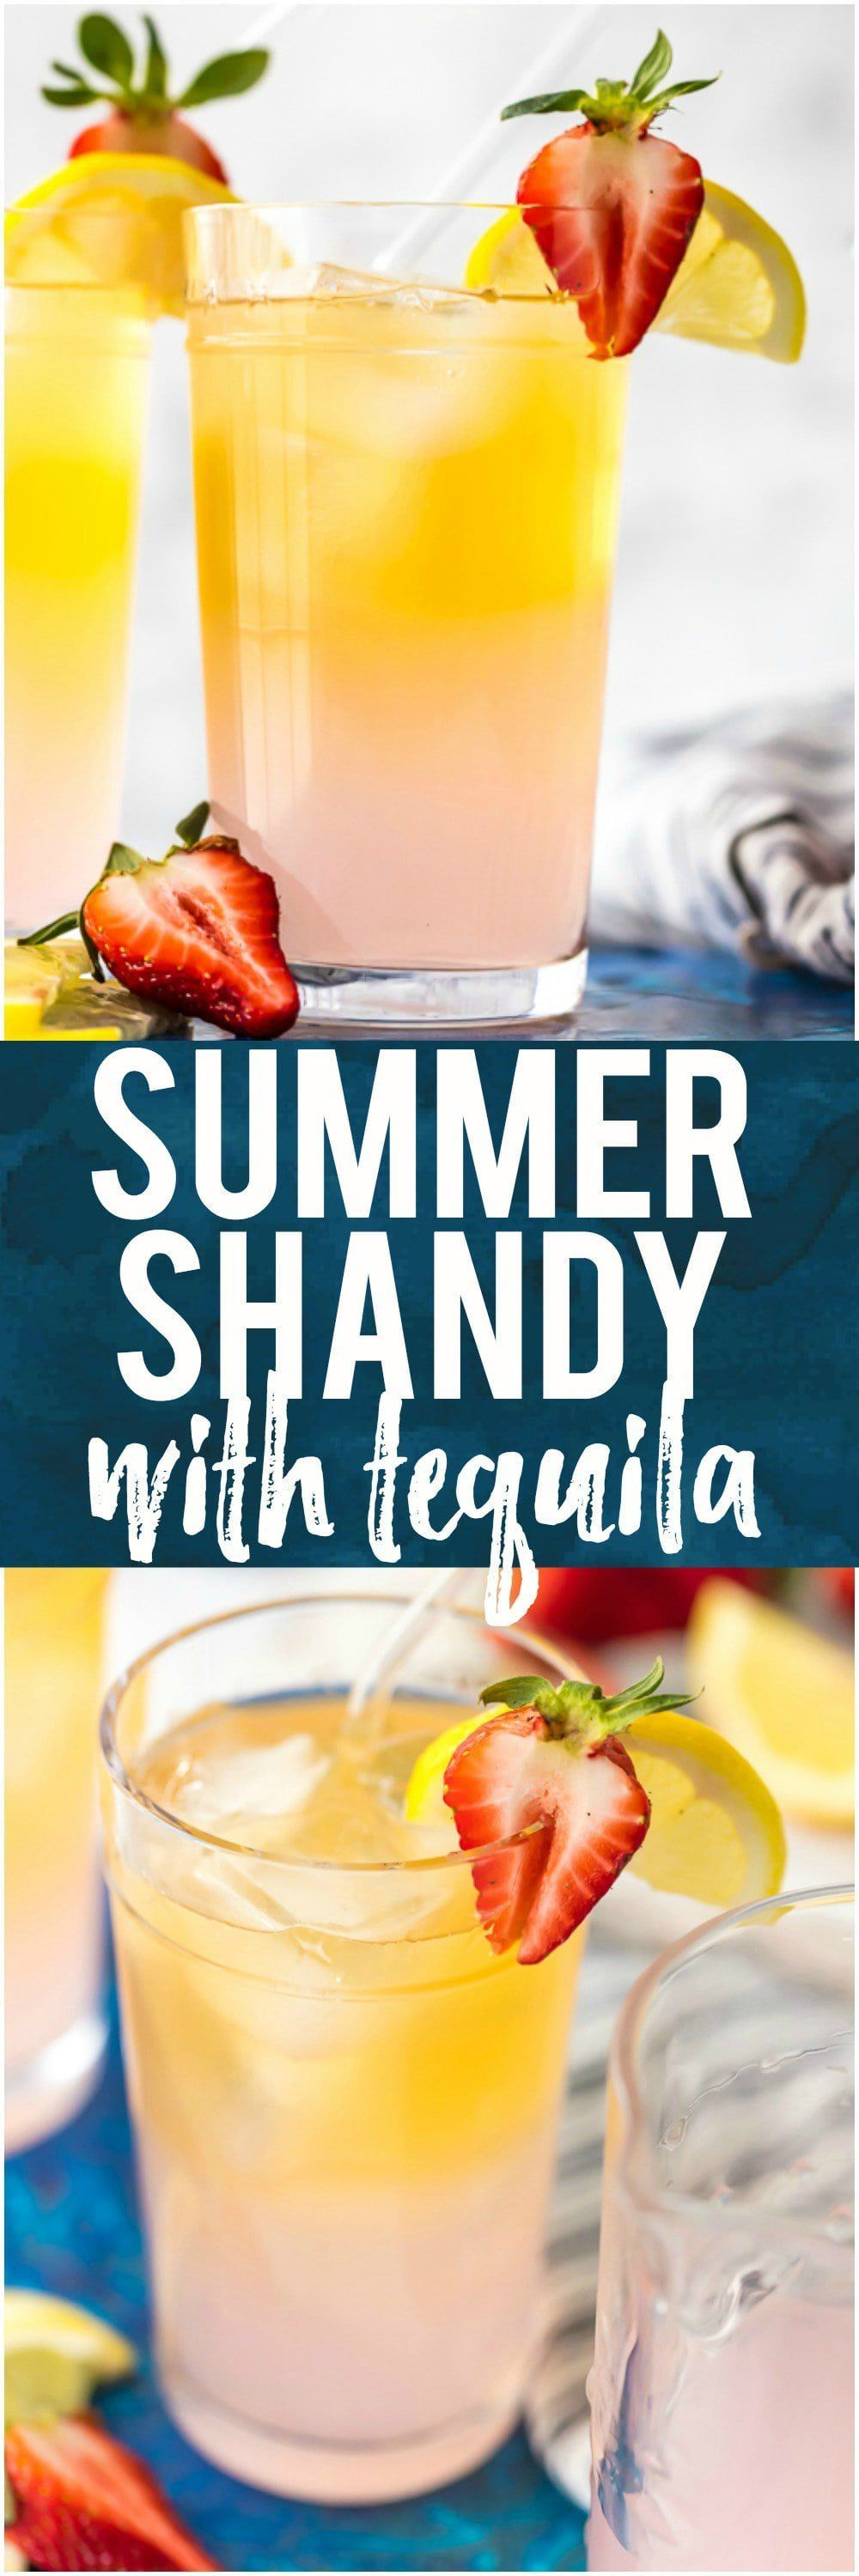 Summer Shandy Recipe with Tequila (Pink Summer Shandy) was my favorite fun cocktail in college! Made with pink lemonade, light beer, and tequila, its the perfect drink for warmer weather. There's something about tequila, beer and lemonade, that just go together. This Summer Beer is a recipe you'll make again and again. #tequila #beer #shandy #pink #lemonade #lemons #fruit #summer via @beckygallhardin